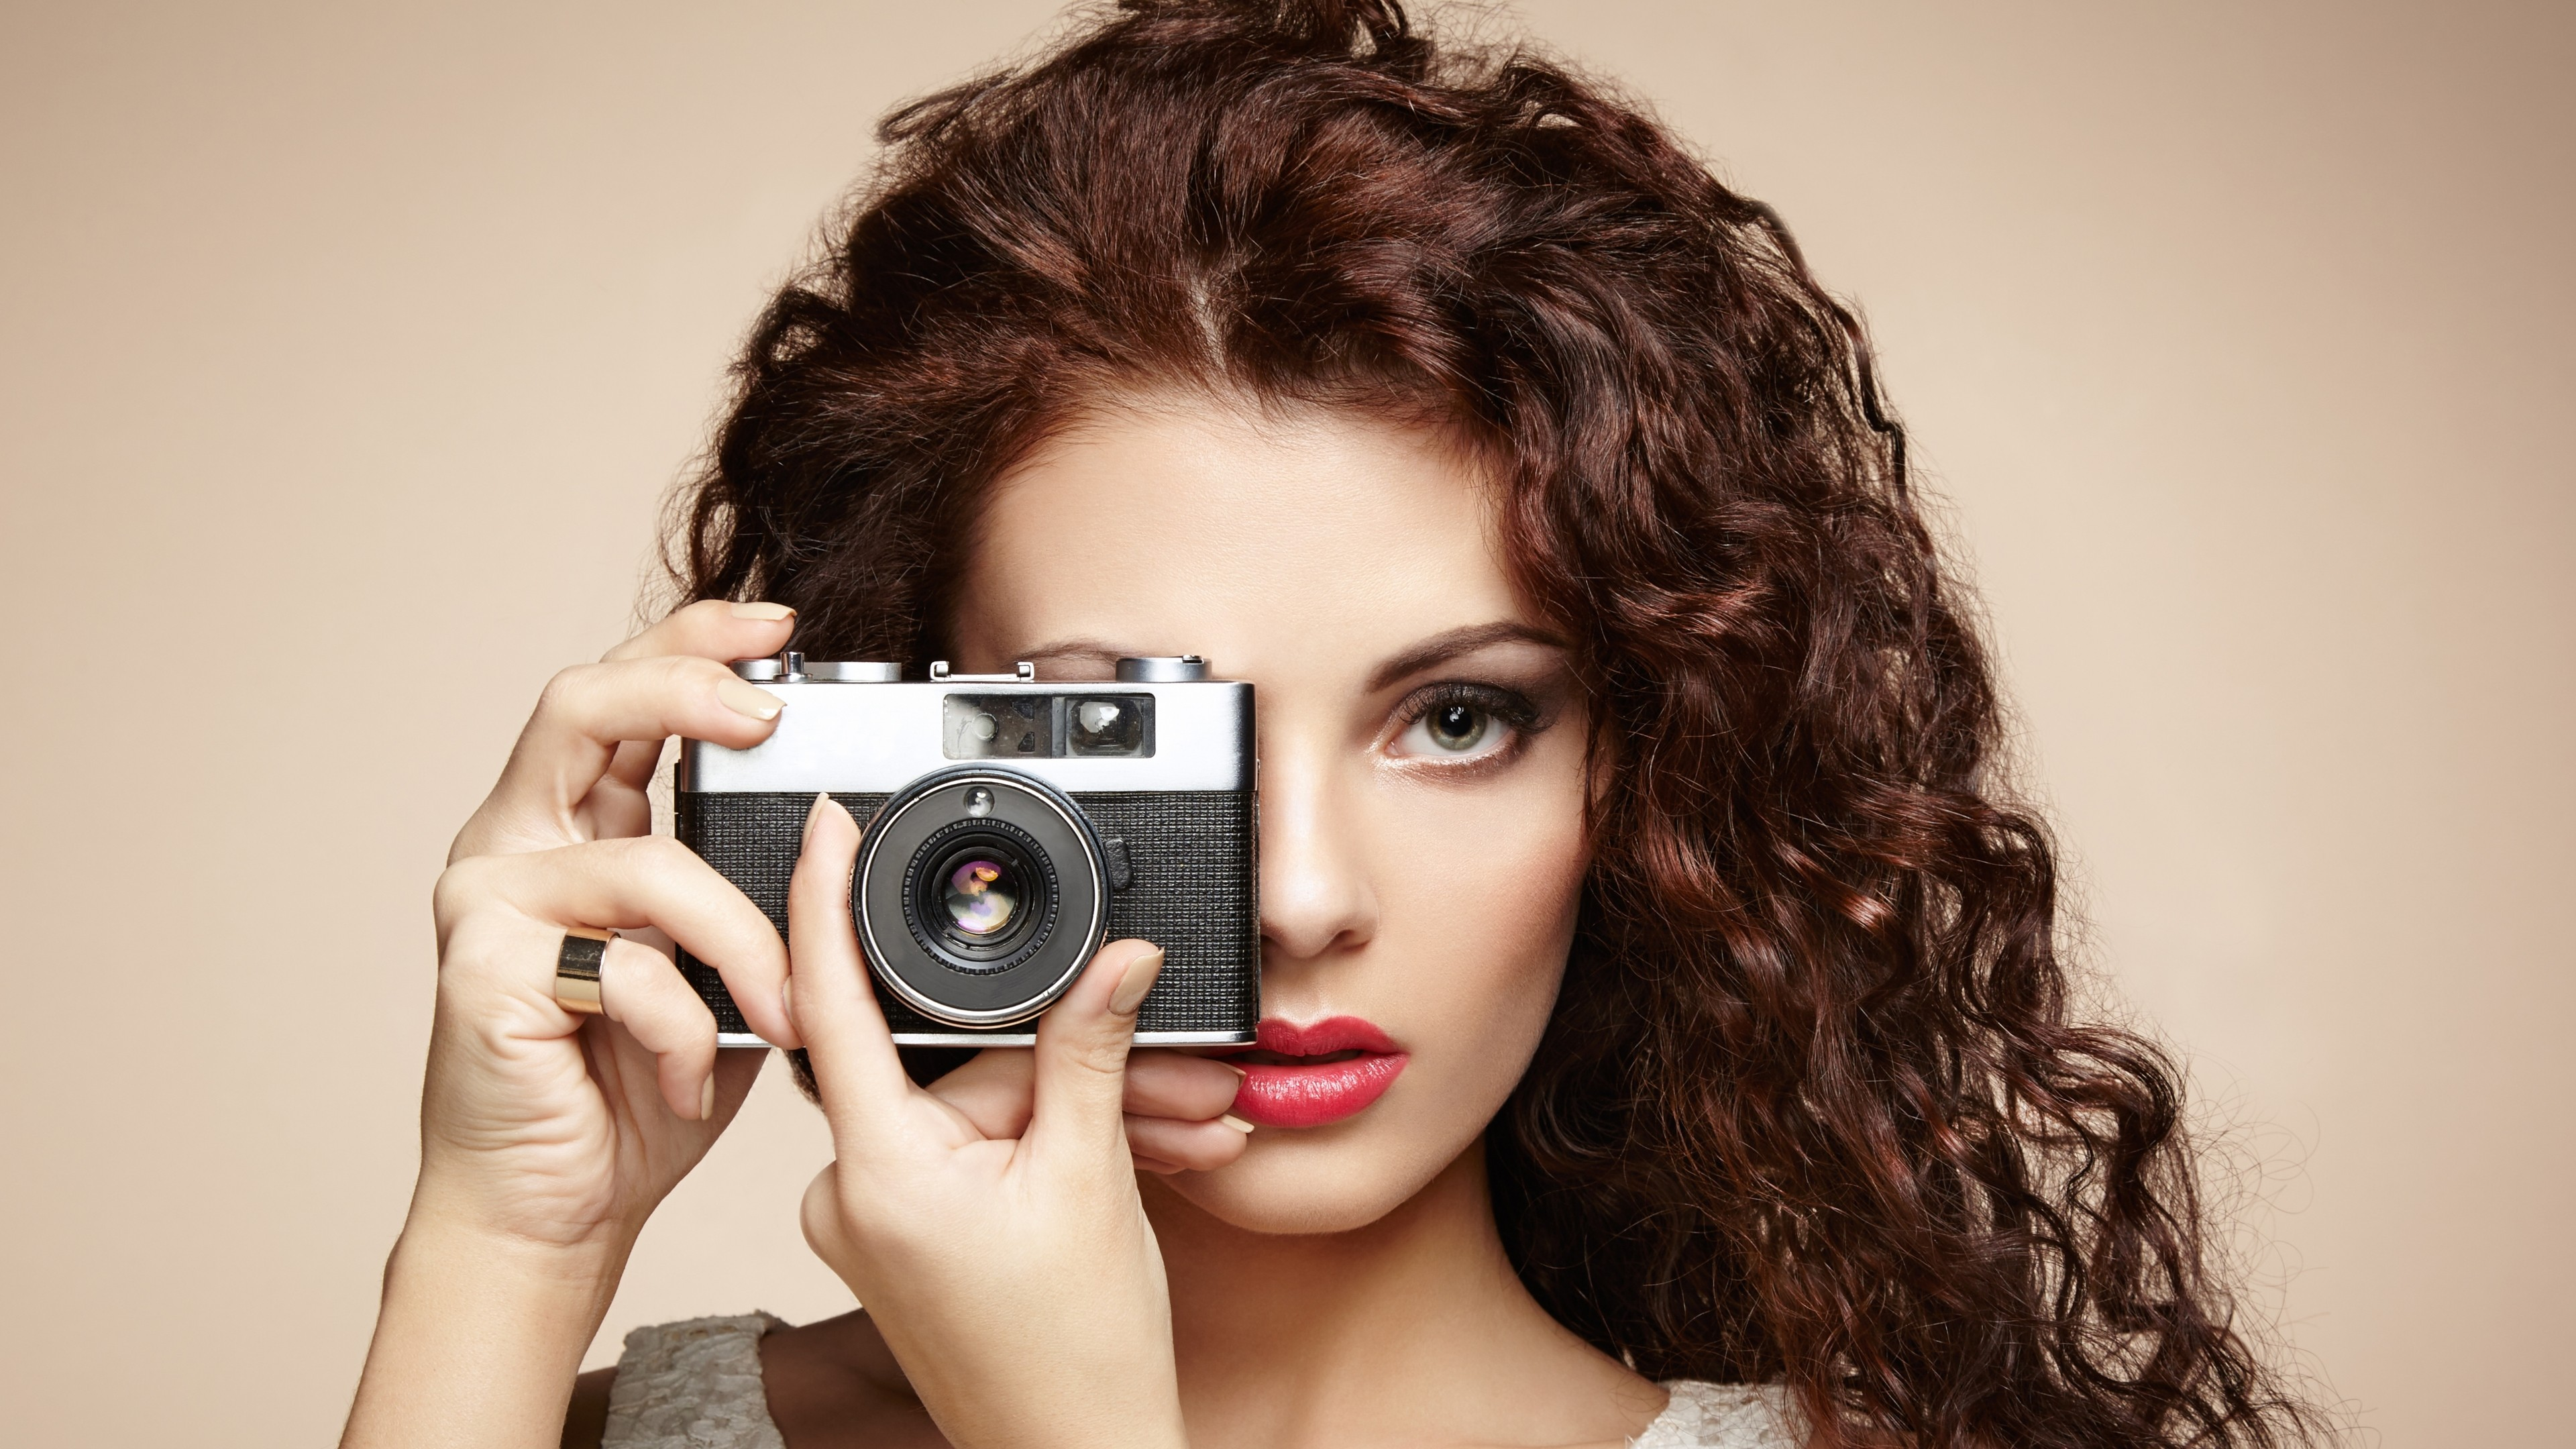 Cute Beautiful Camera Girl 1080p Wallpaper   New HD Wallpapers 3840x2160